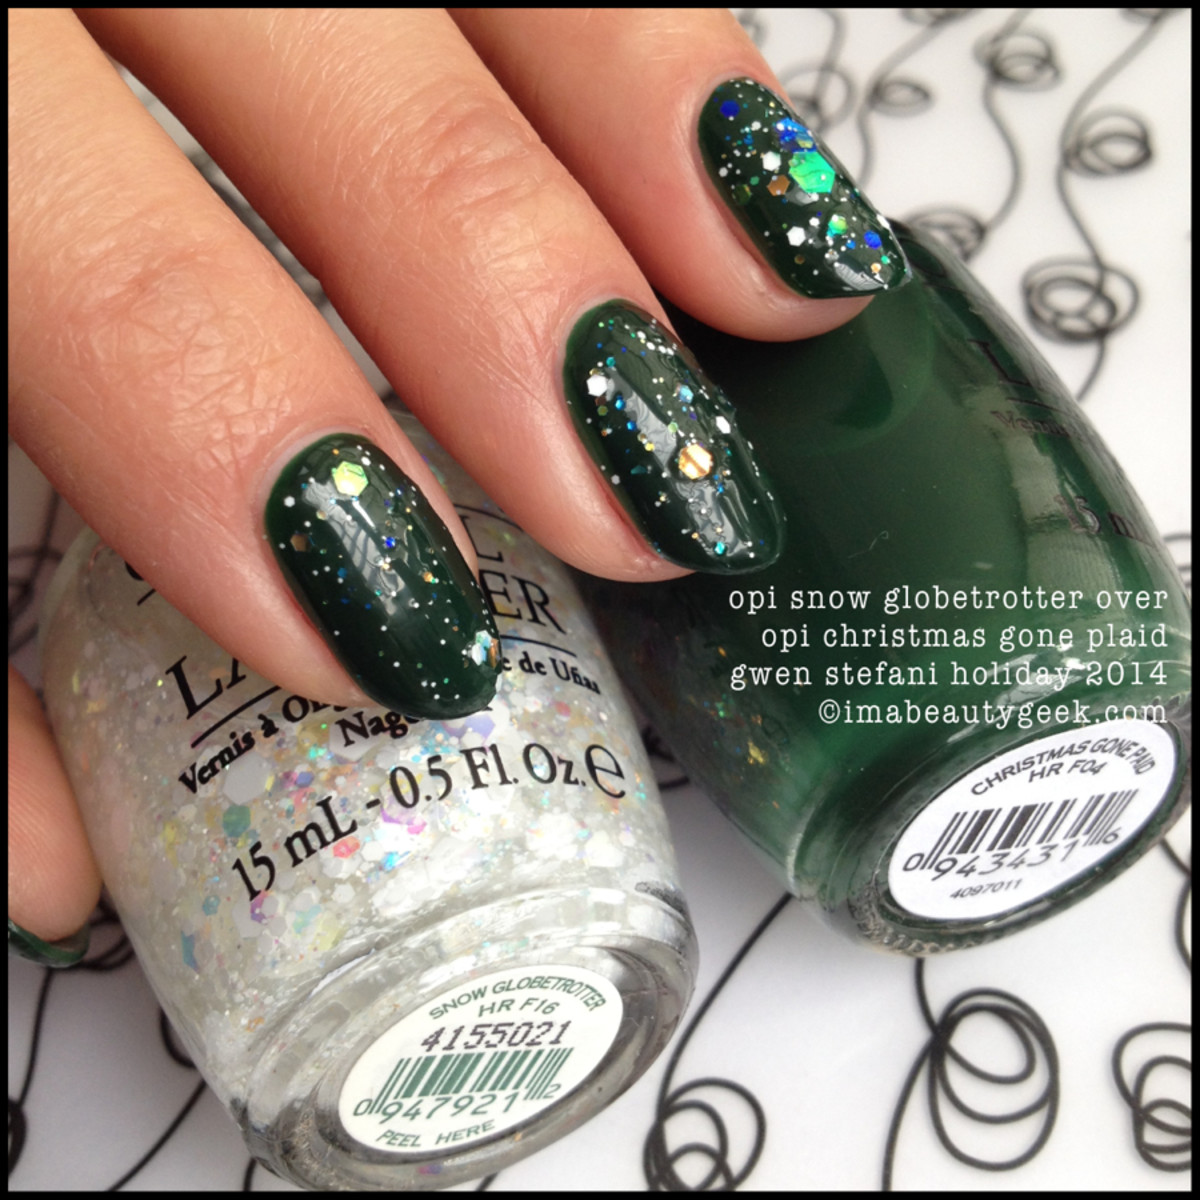 opi gwen stefani holiday 2014: snow globetrotter over christmas gone plaid